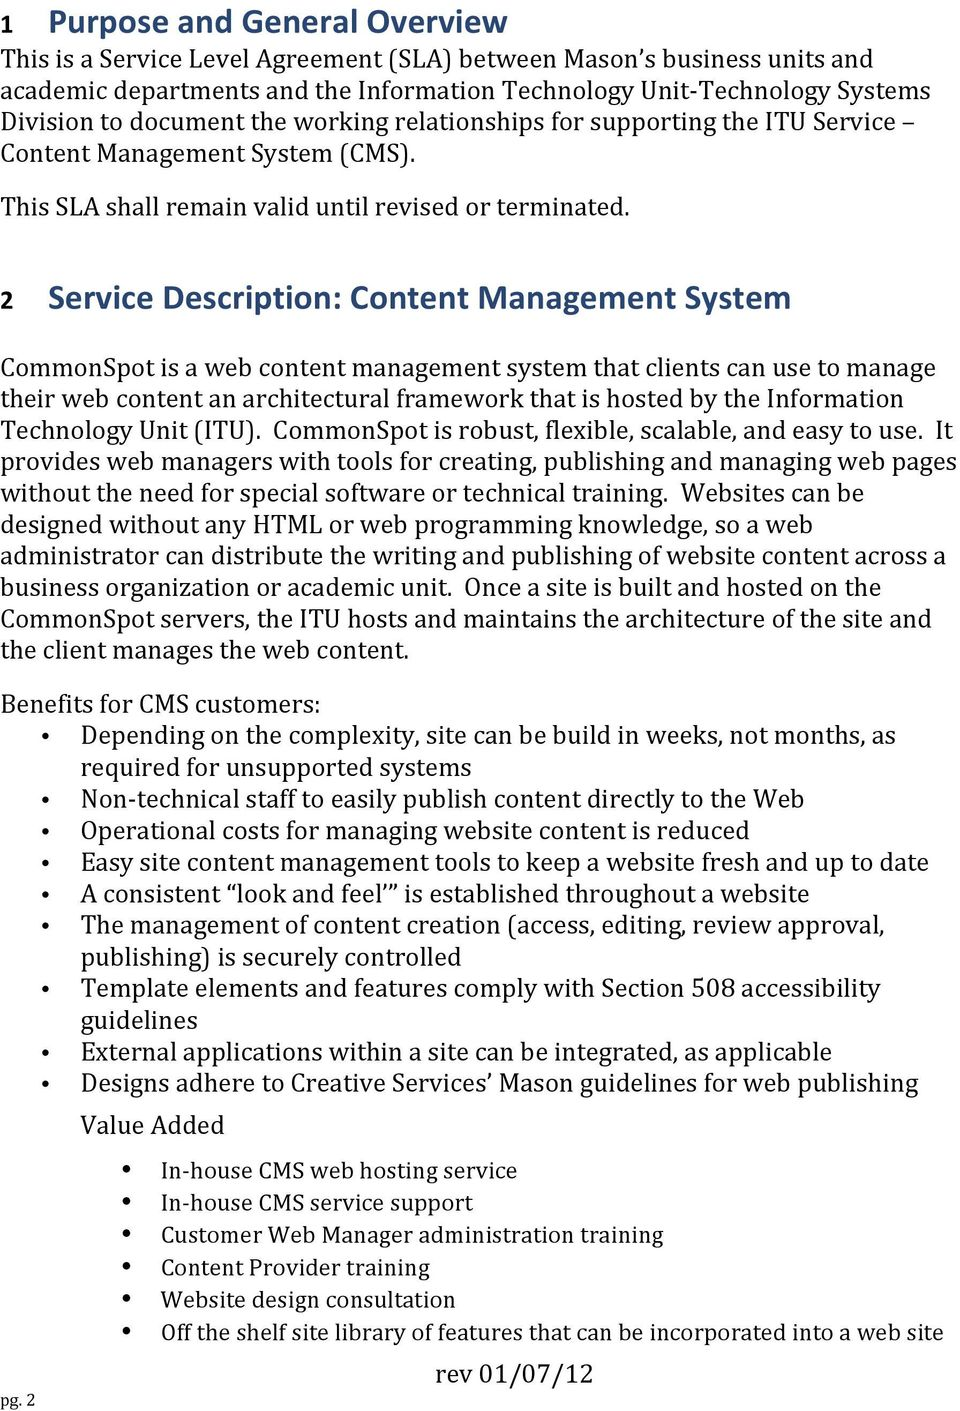 2 Service Description: Content Management System CommonSpot is a web content management system that clients can use to manage their web content an architectural framework that is hosted by the